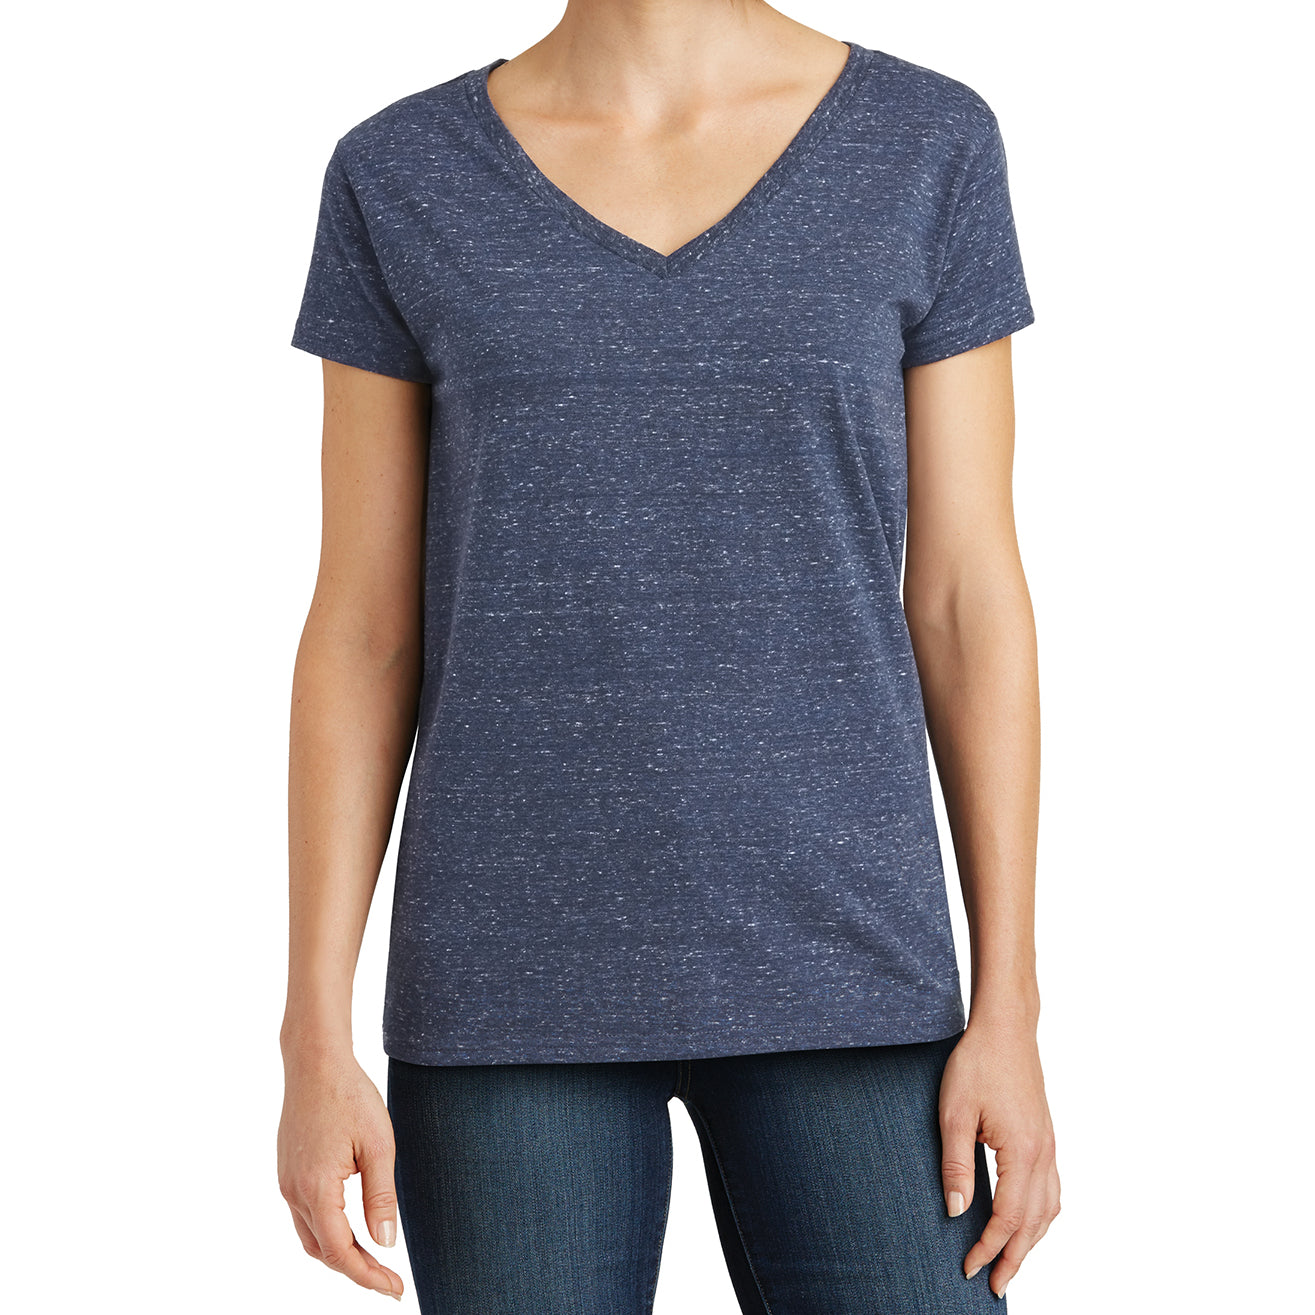 Womens Cosmic Relaxed V-Neck Tee - Navy/Royal Cosmic - Front